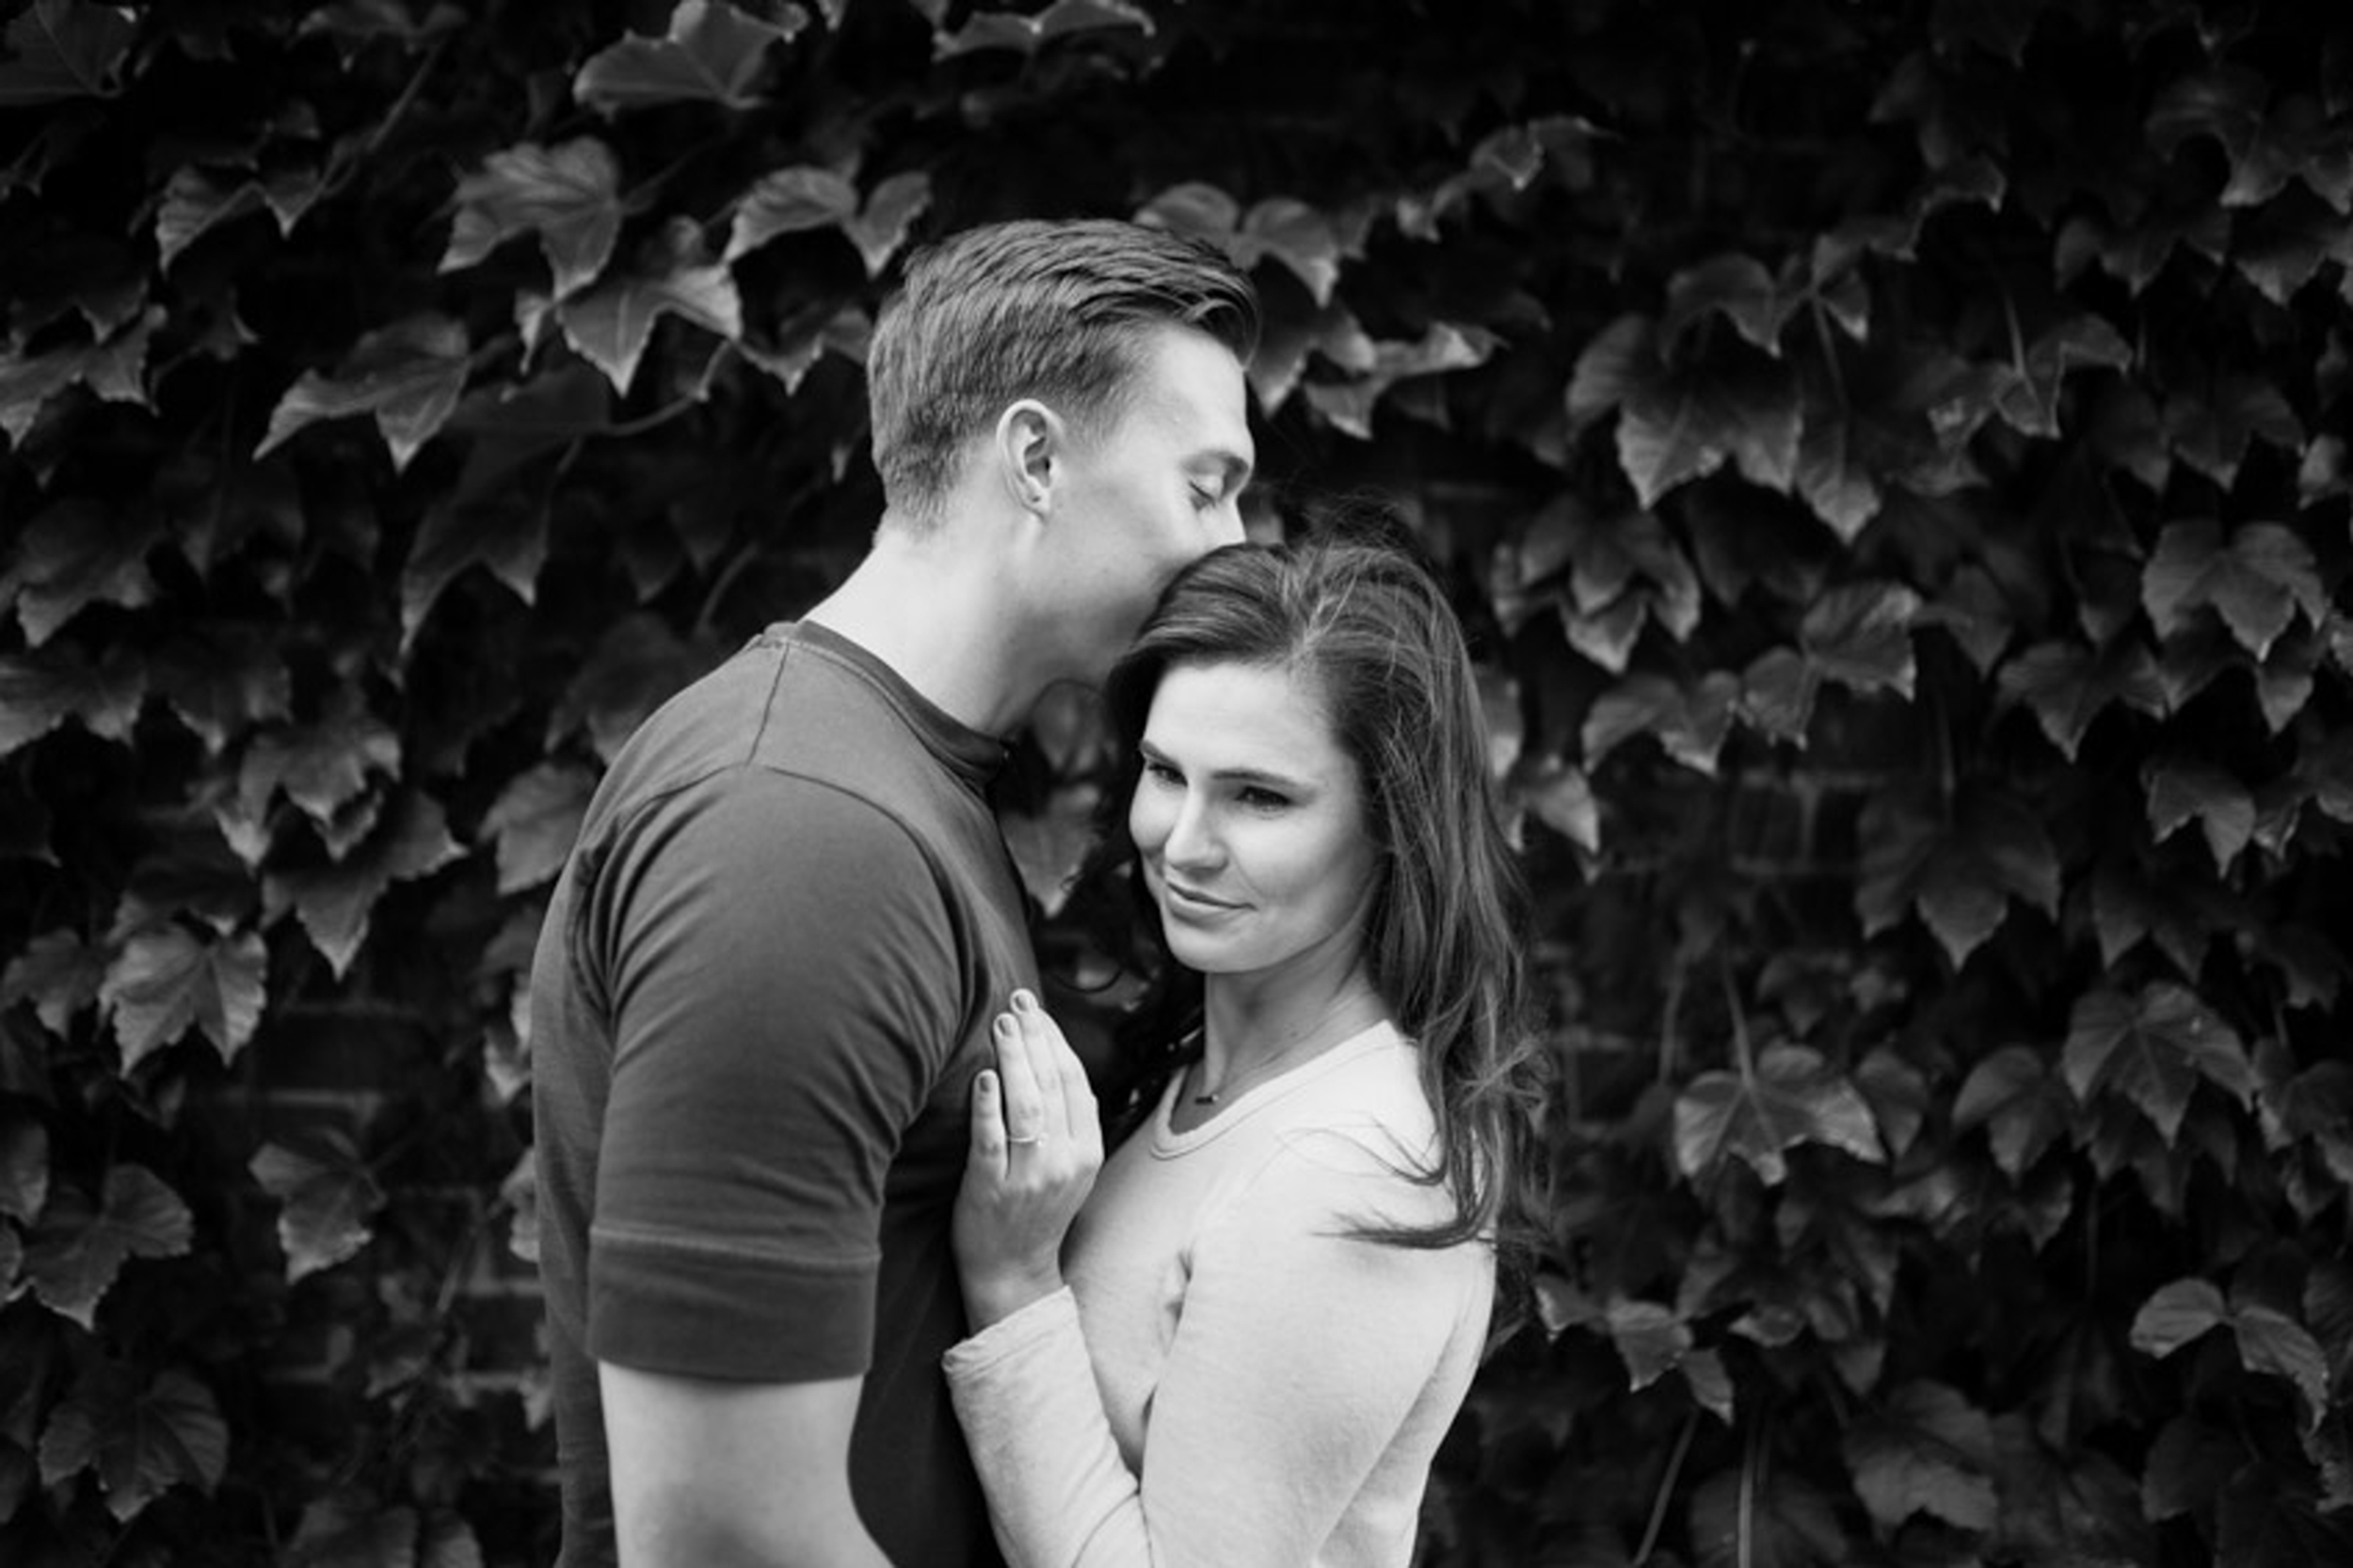 Romantic Black and White Baltimore Engagment